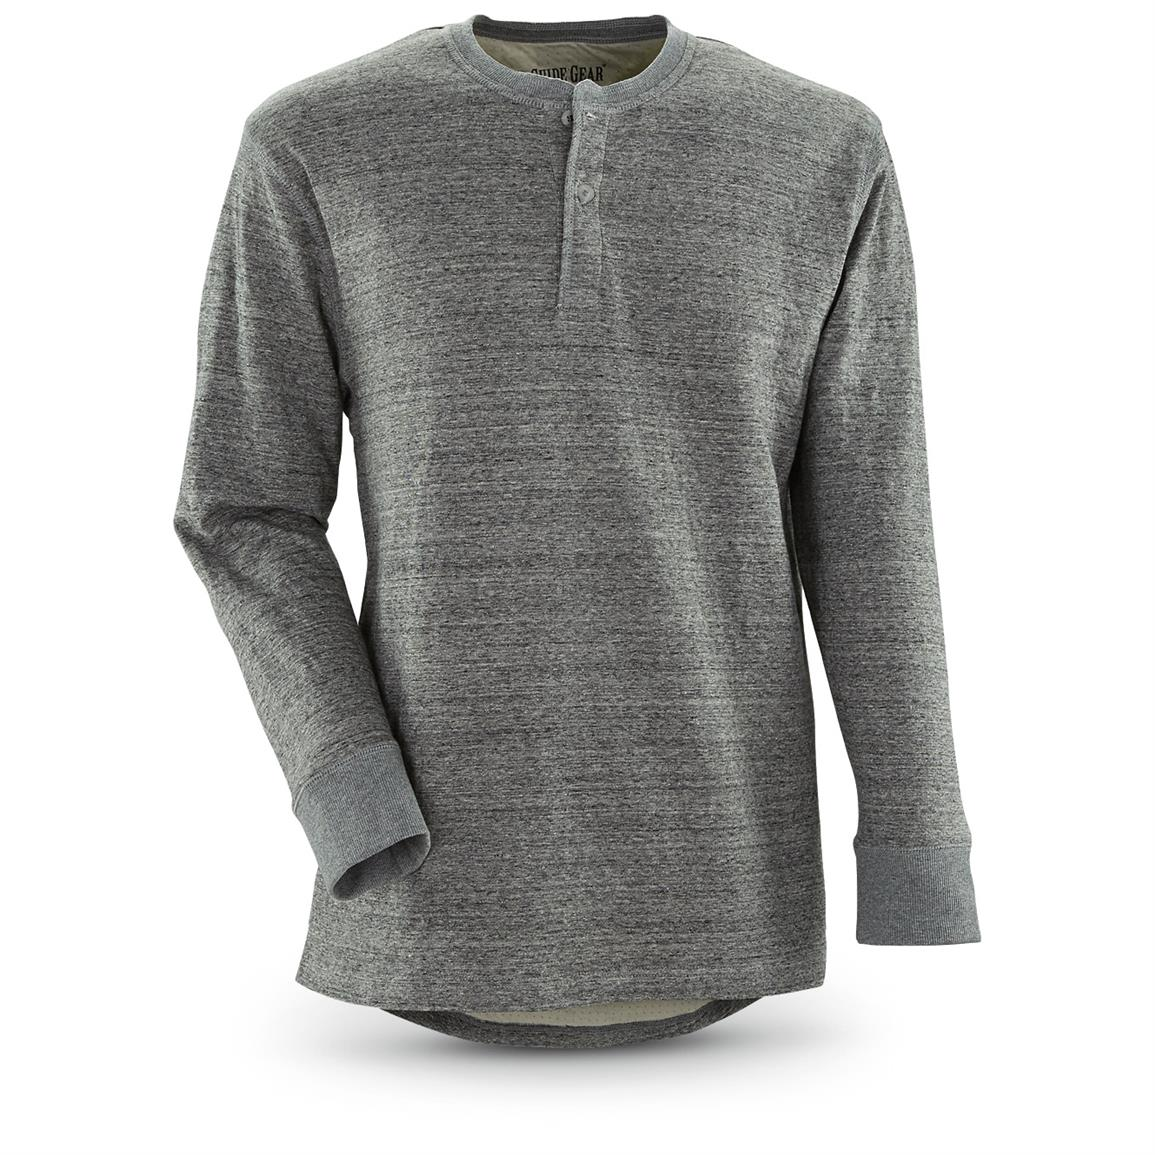 Guide Gear Men's Double-lined Long Sleeve Henley, Gray